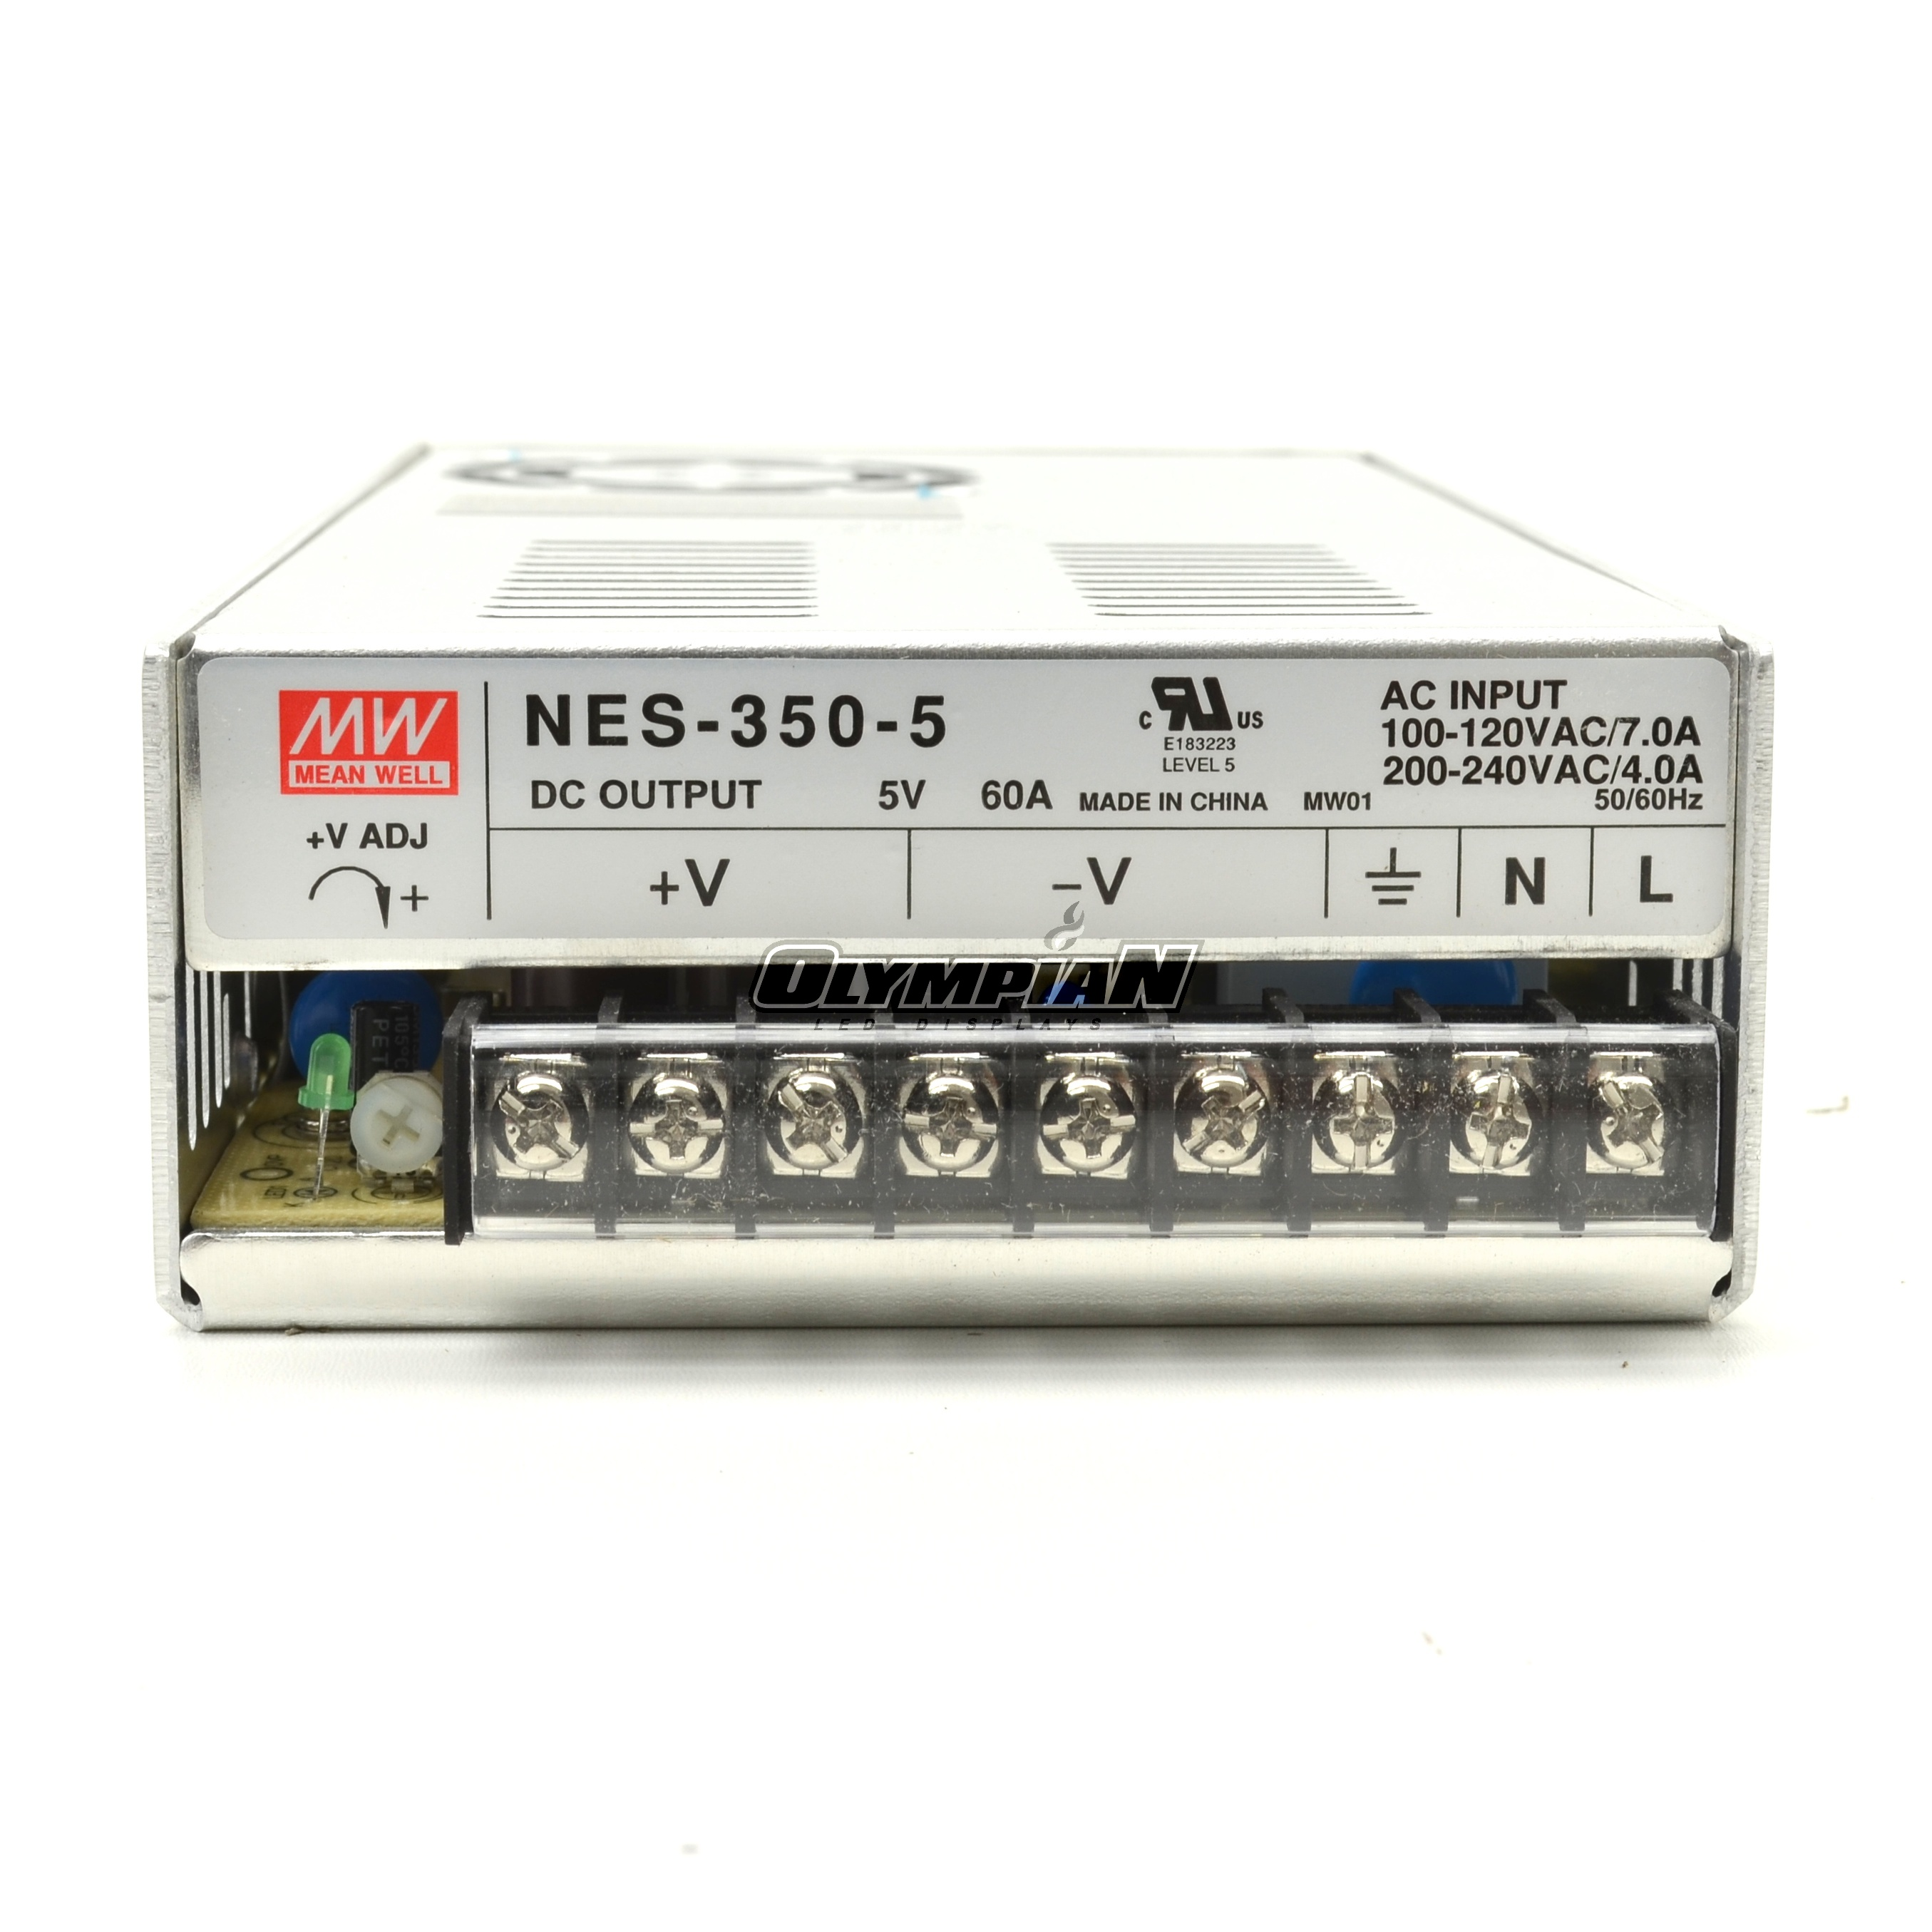 Meanwell Nes 350 5 300w 60a 5v Power Supply